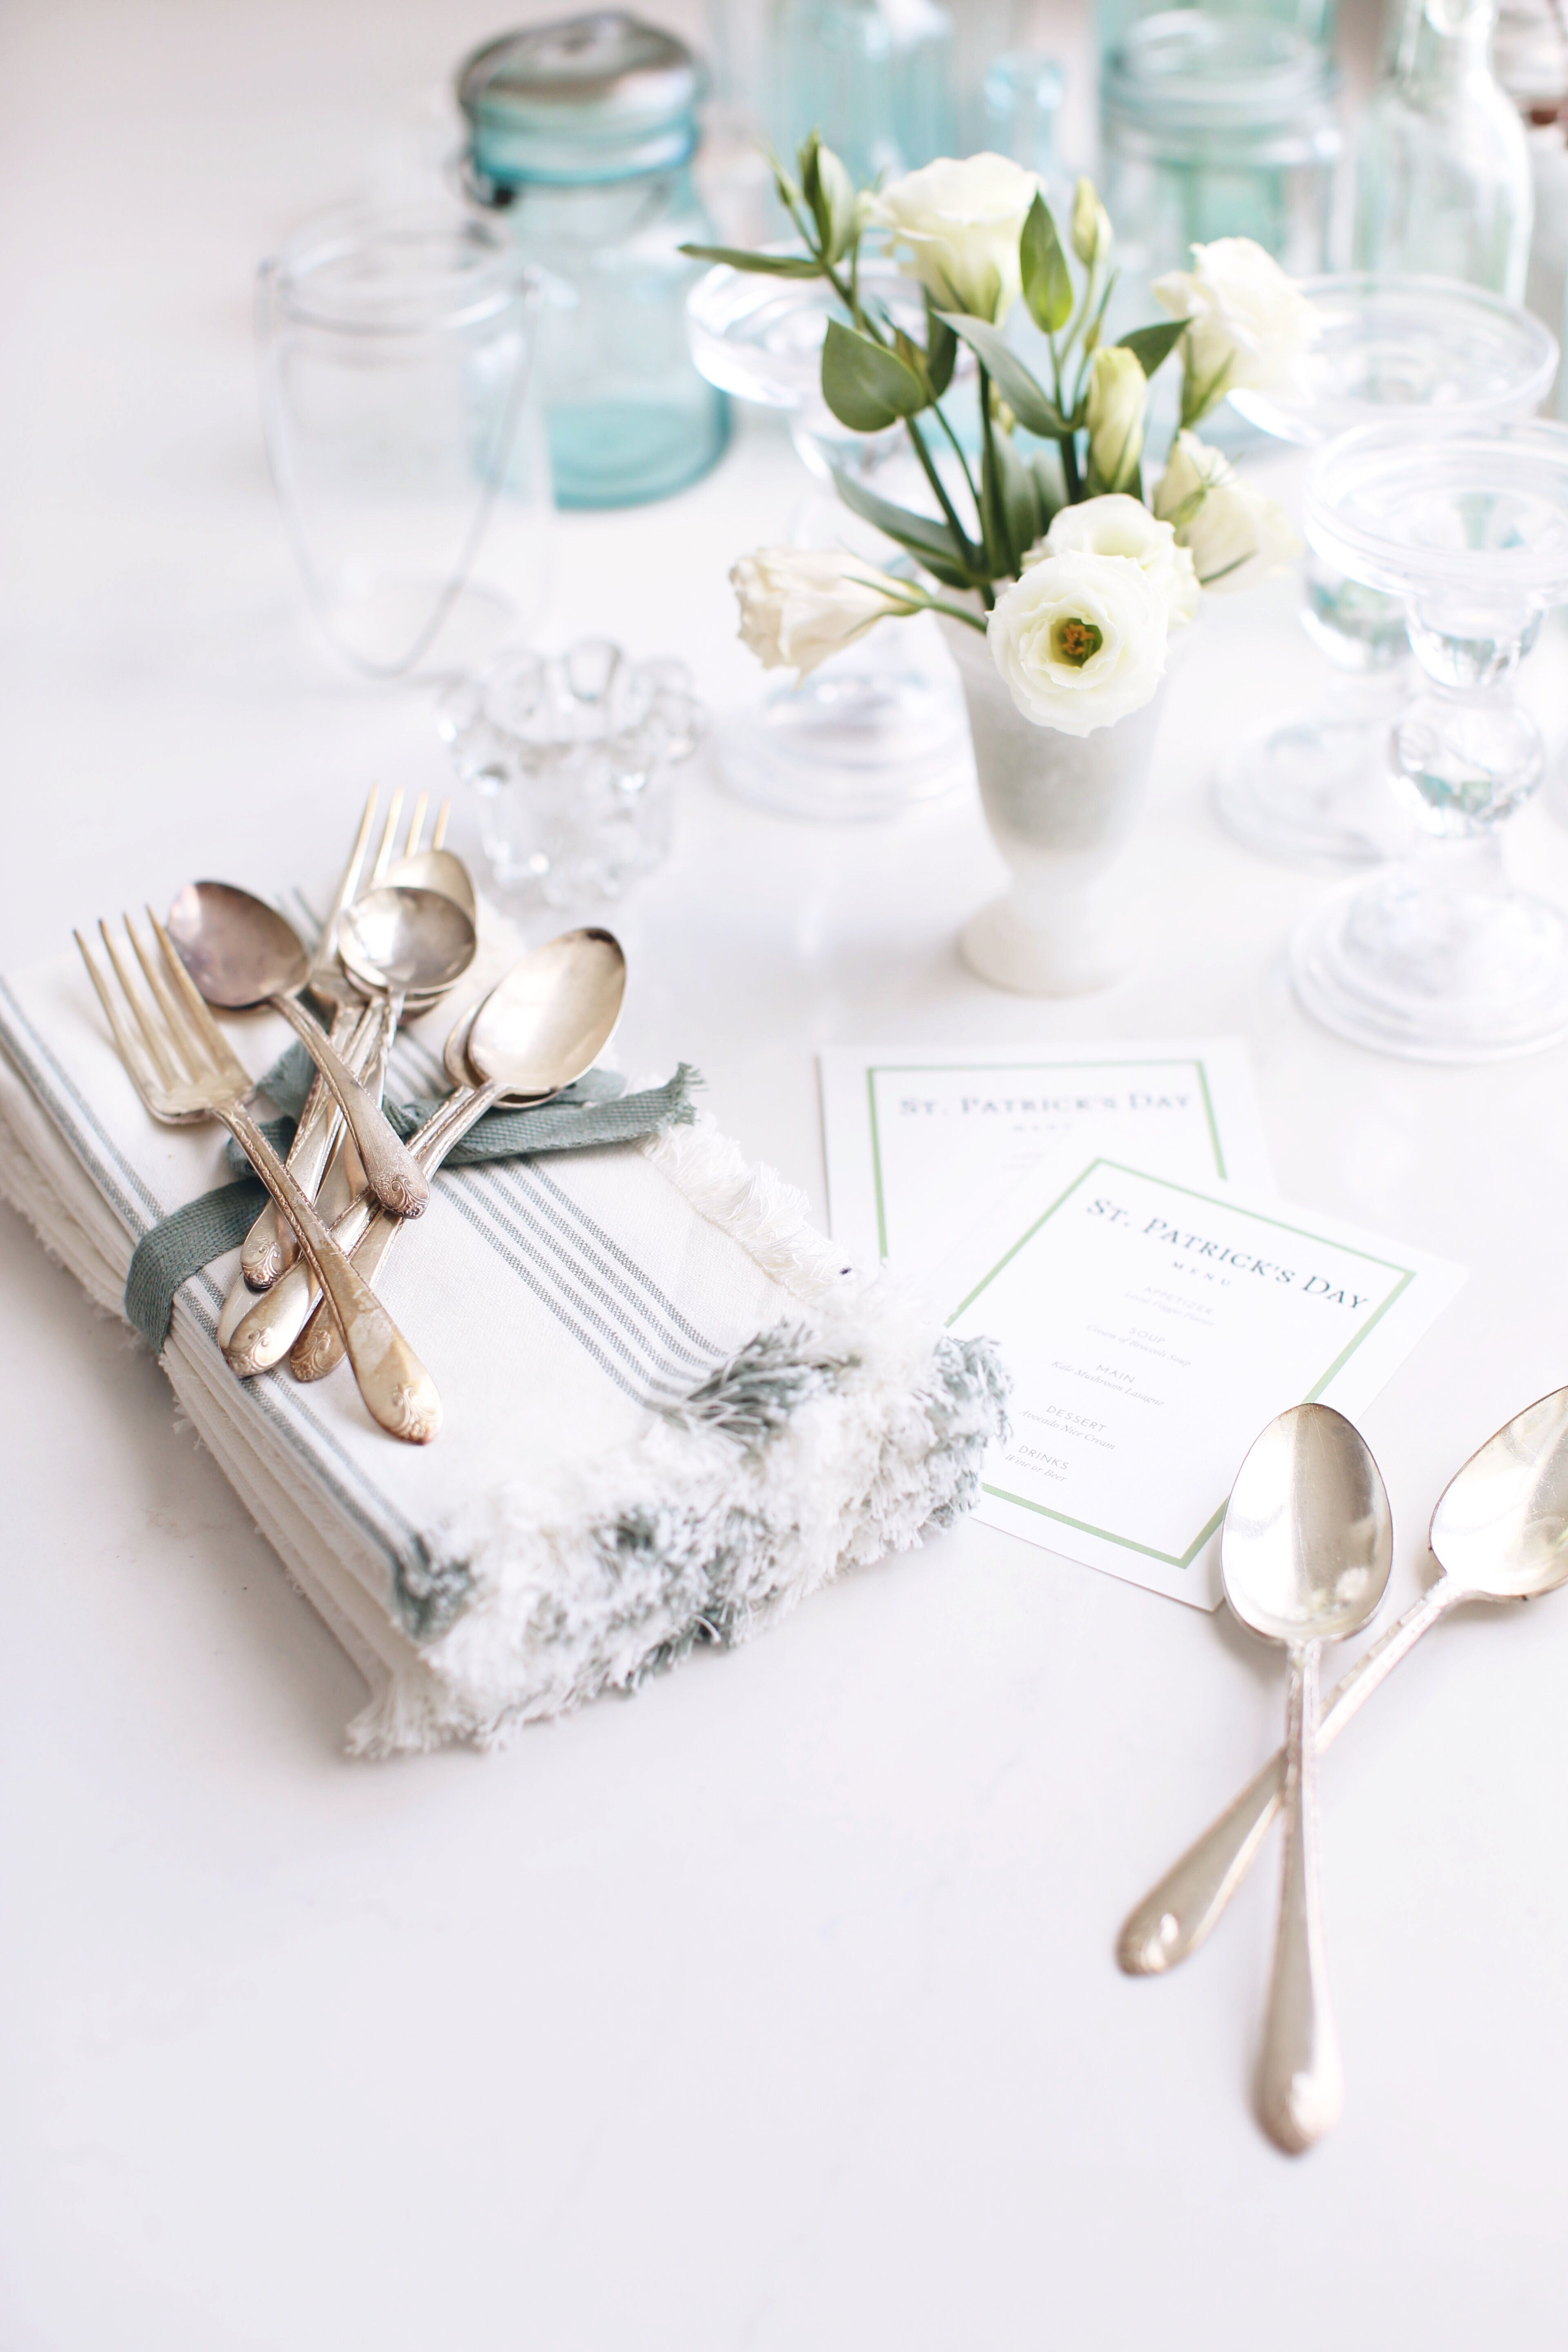 Fraiche Table vintage cutlery with white flowers and vintage candle holders